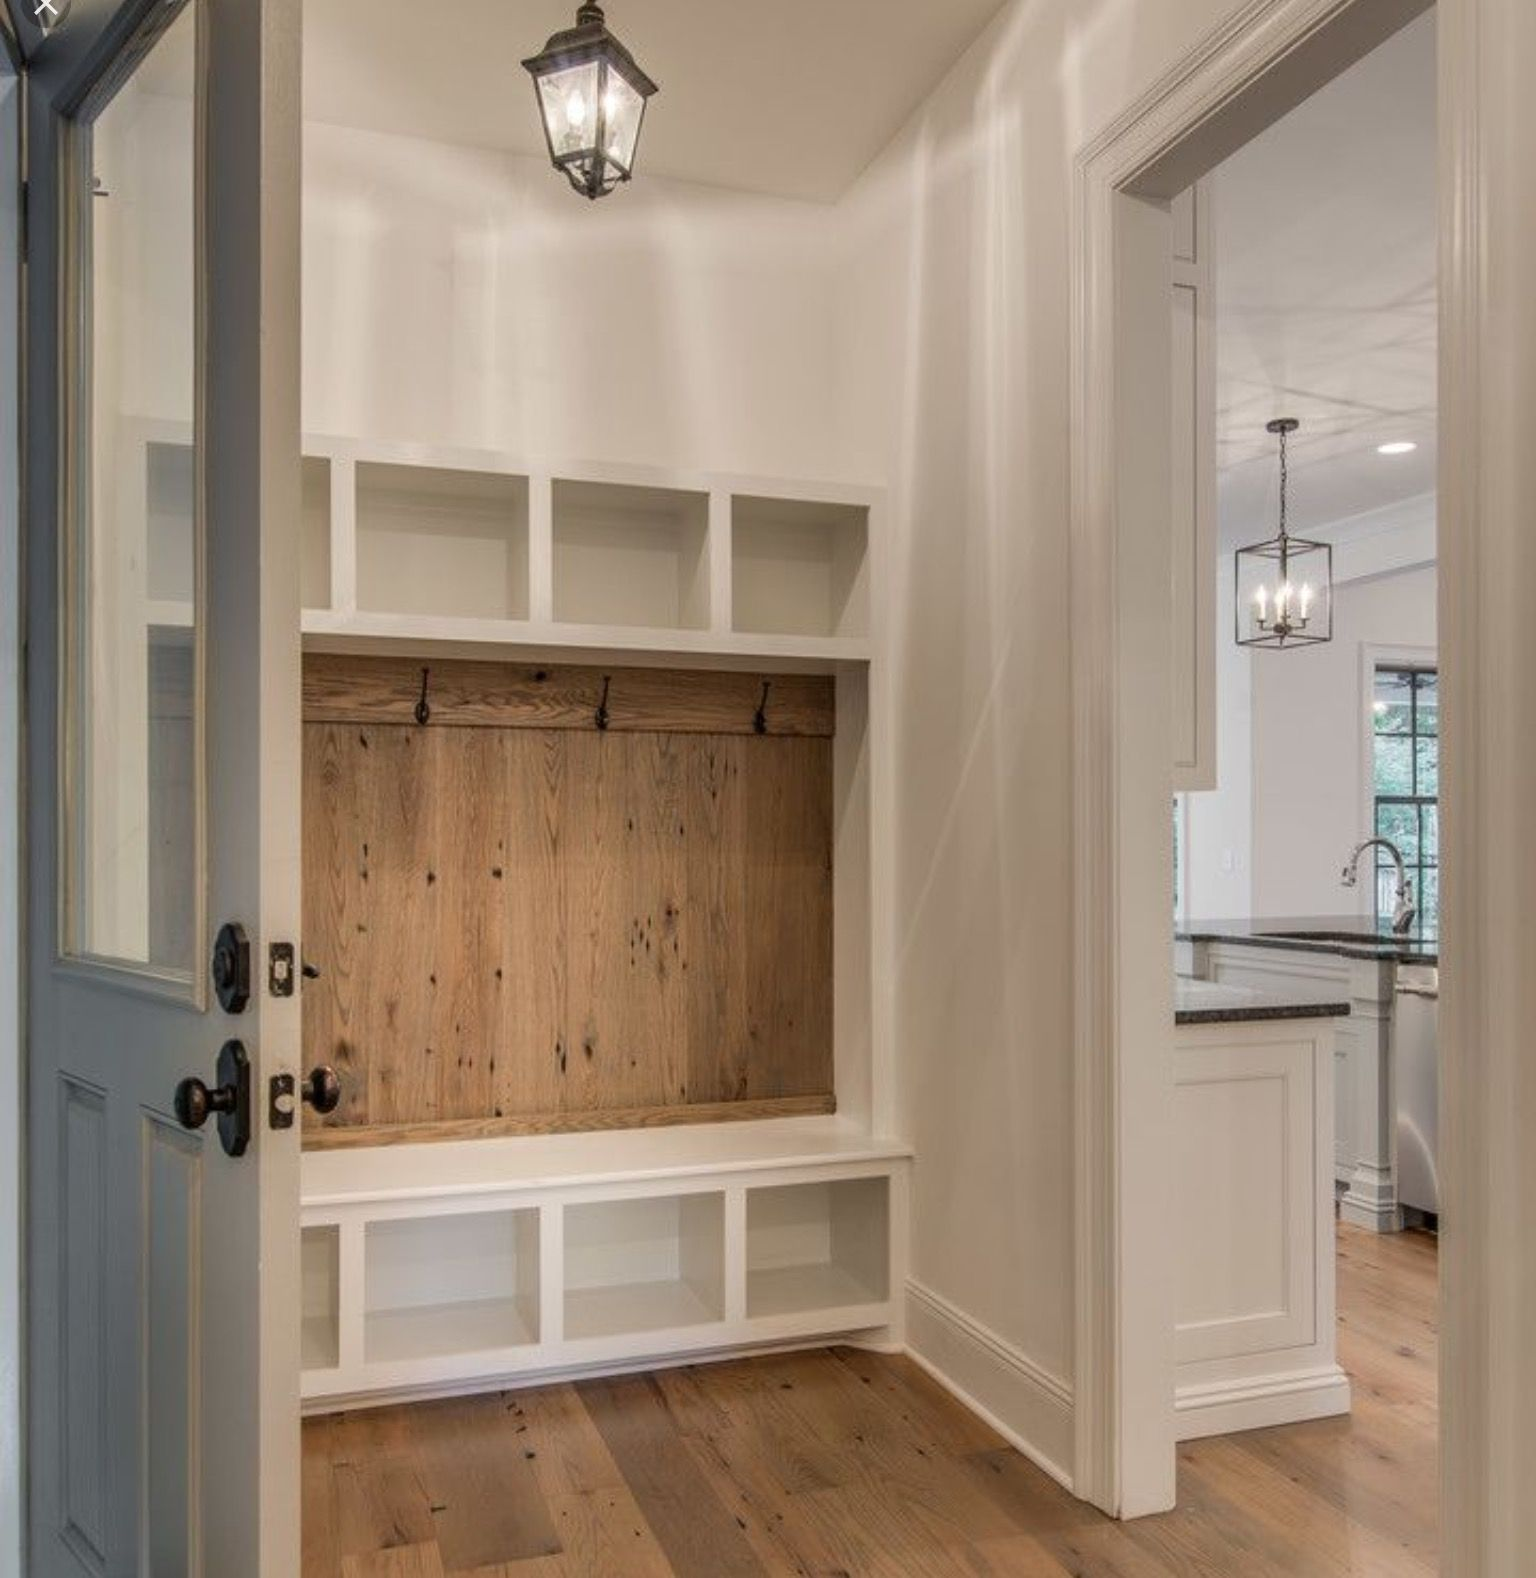 Must Have Farmhouse Kitchen Decor Ideas: Wood Plank Wall At Mud Room